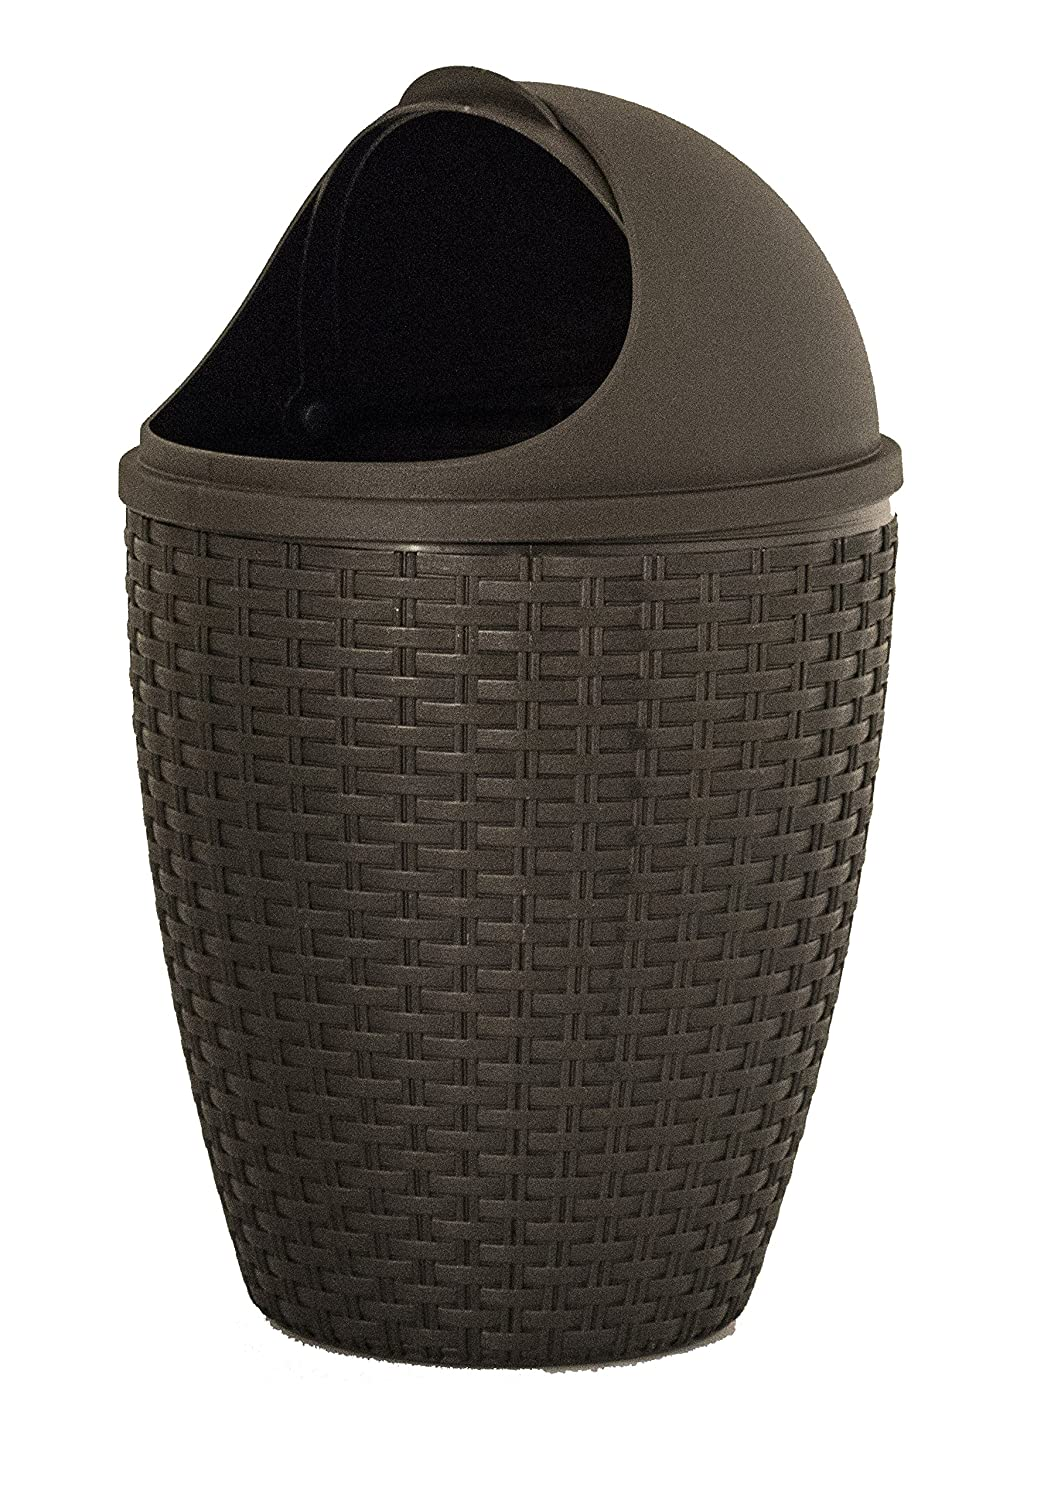 1.88-Gal Round Roll Up Trash Can Color: Beige Superior Performance 465